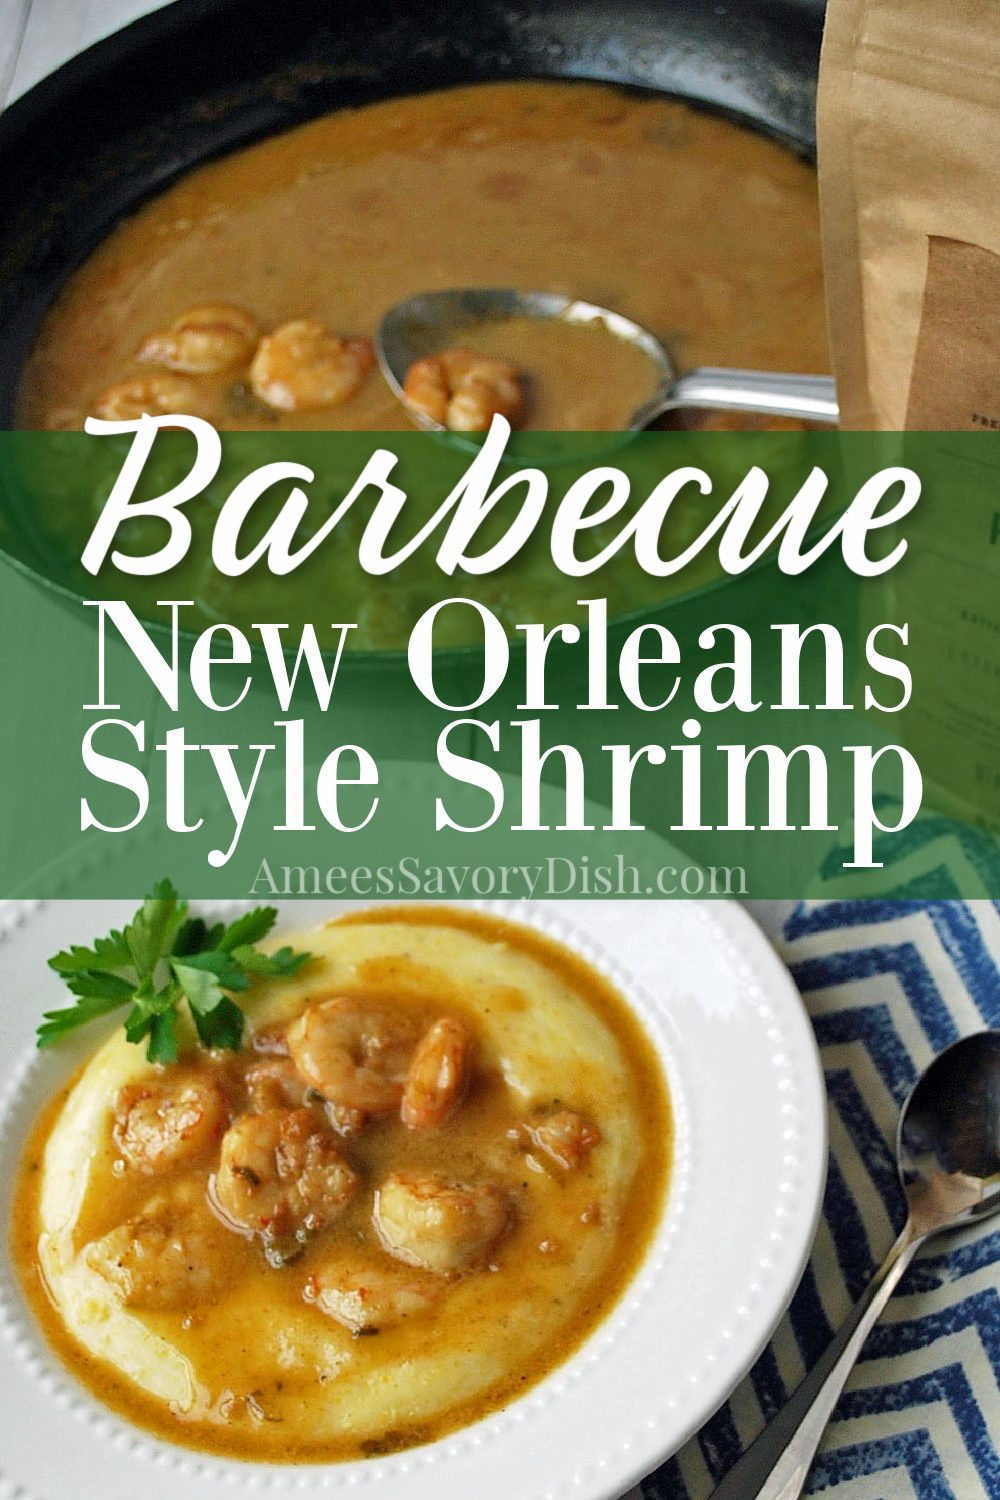 A recipe variation of New Orleans style barbecue shrimp served over creamy aged-cheddar polenta. A delicious twist on shrimp & grits! #shrimprecipe #shrimpandgrits #barbecueshrimp #southernrecipes #glutenfree via @Ameessavorydish